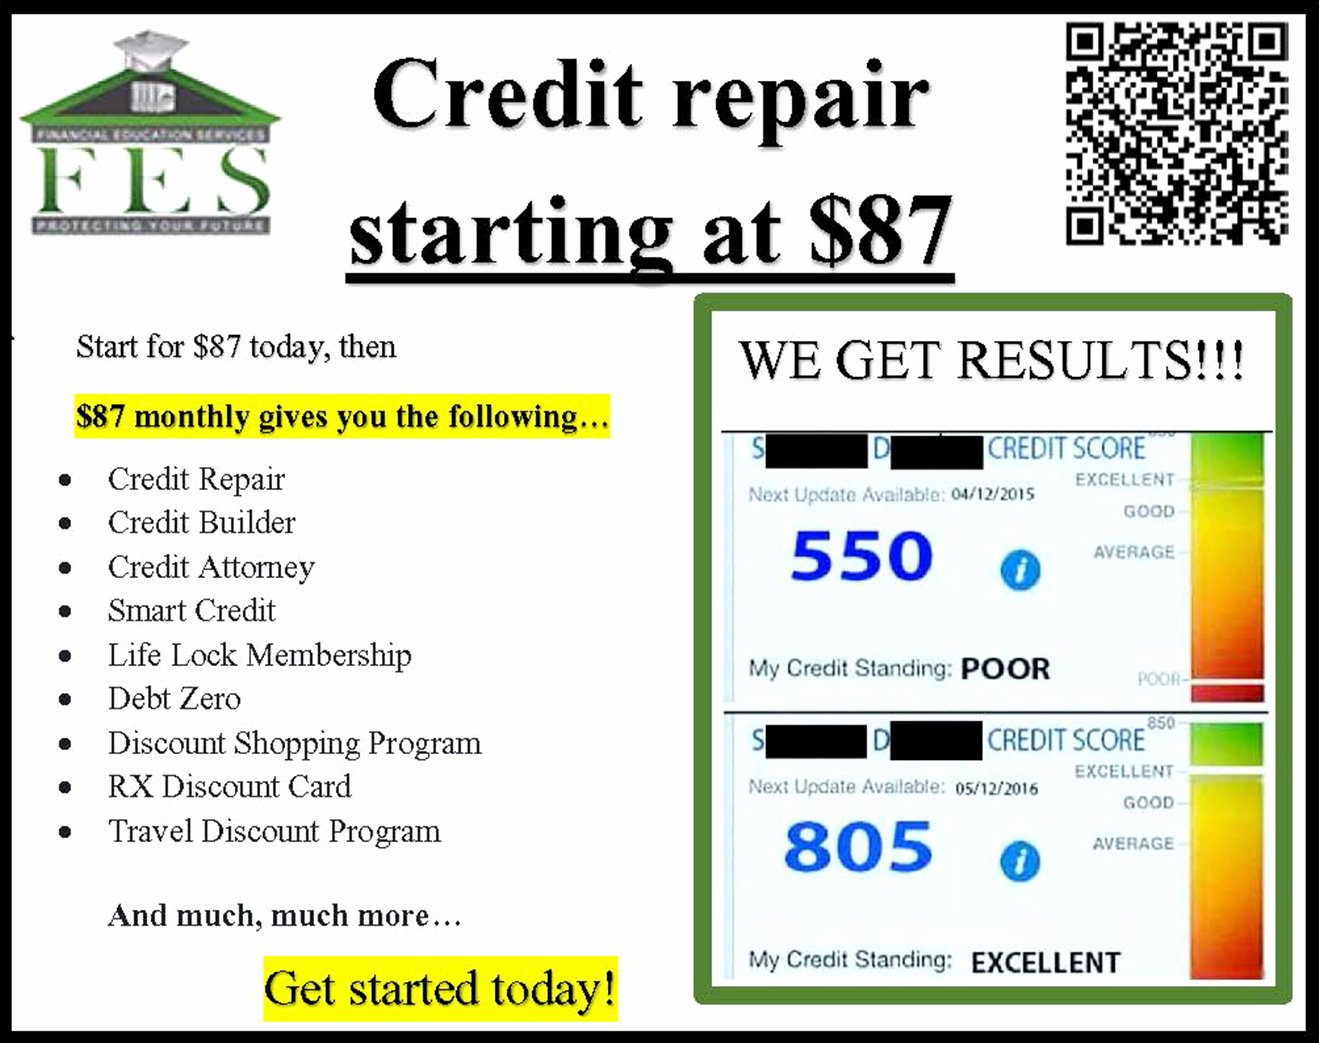 Credit Repair Flyer Template Luxury Credit Repair Flyers Colesecolossus